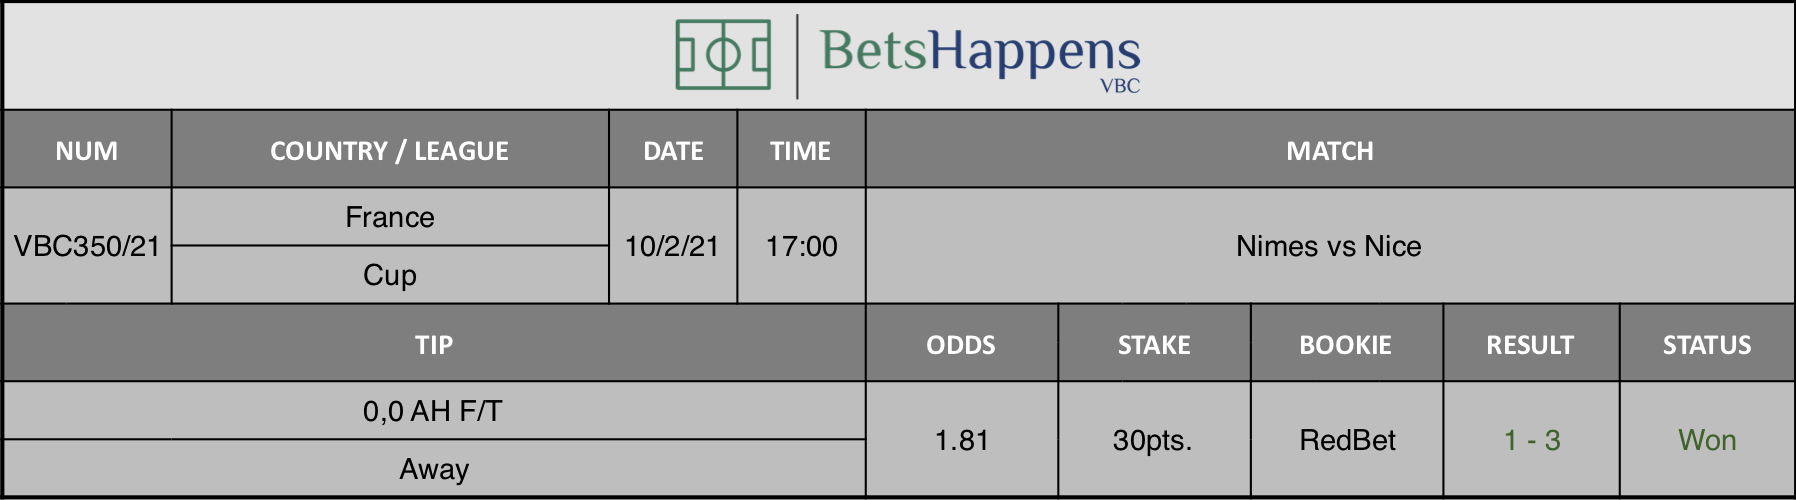 Results of our tip for the Nimes vs Nice match where 0,0 AH F/T  Away is recommended.